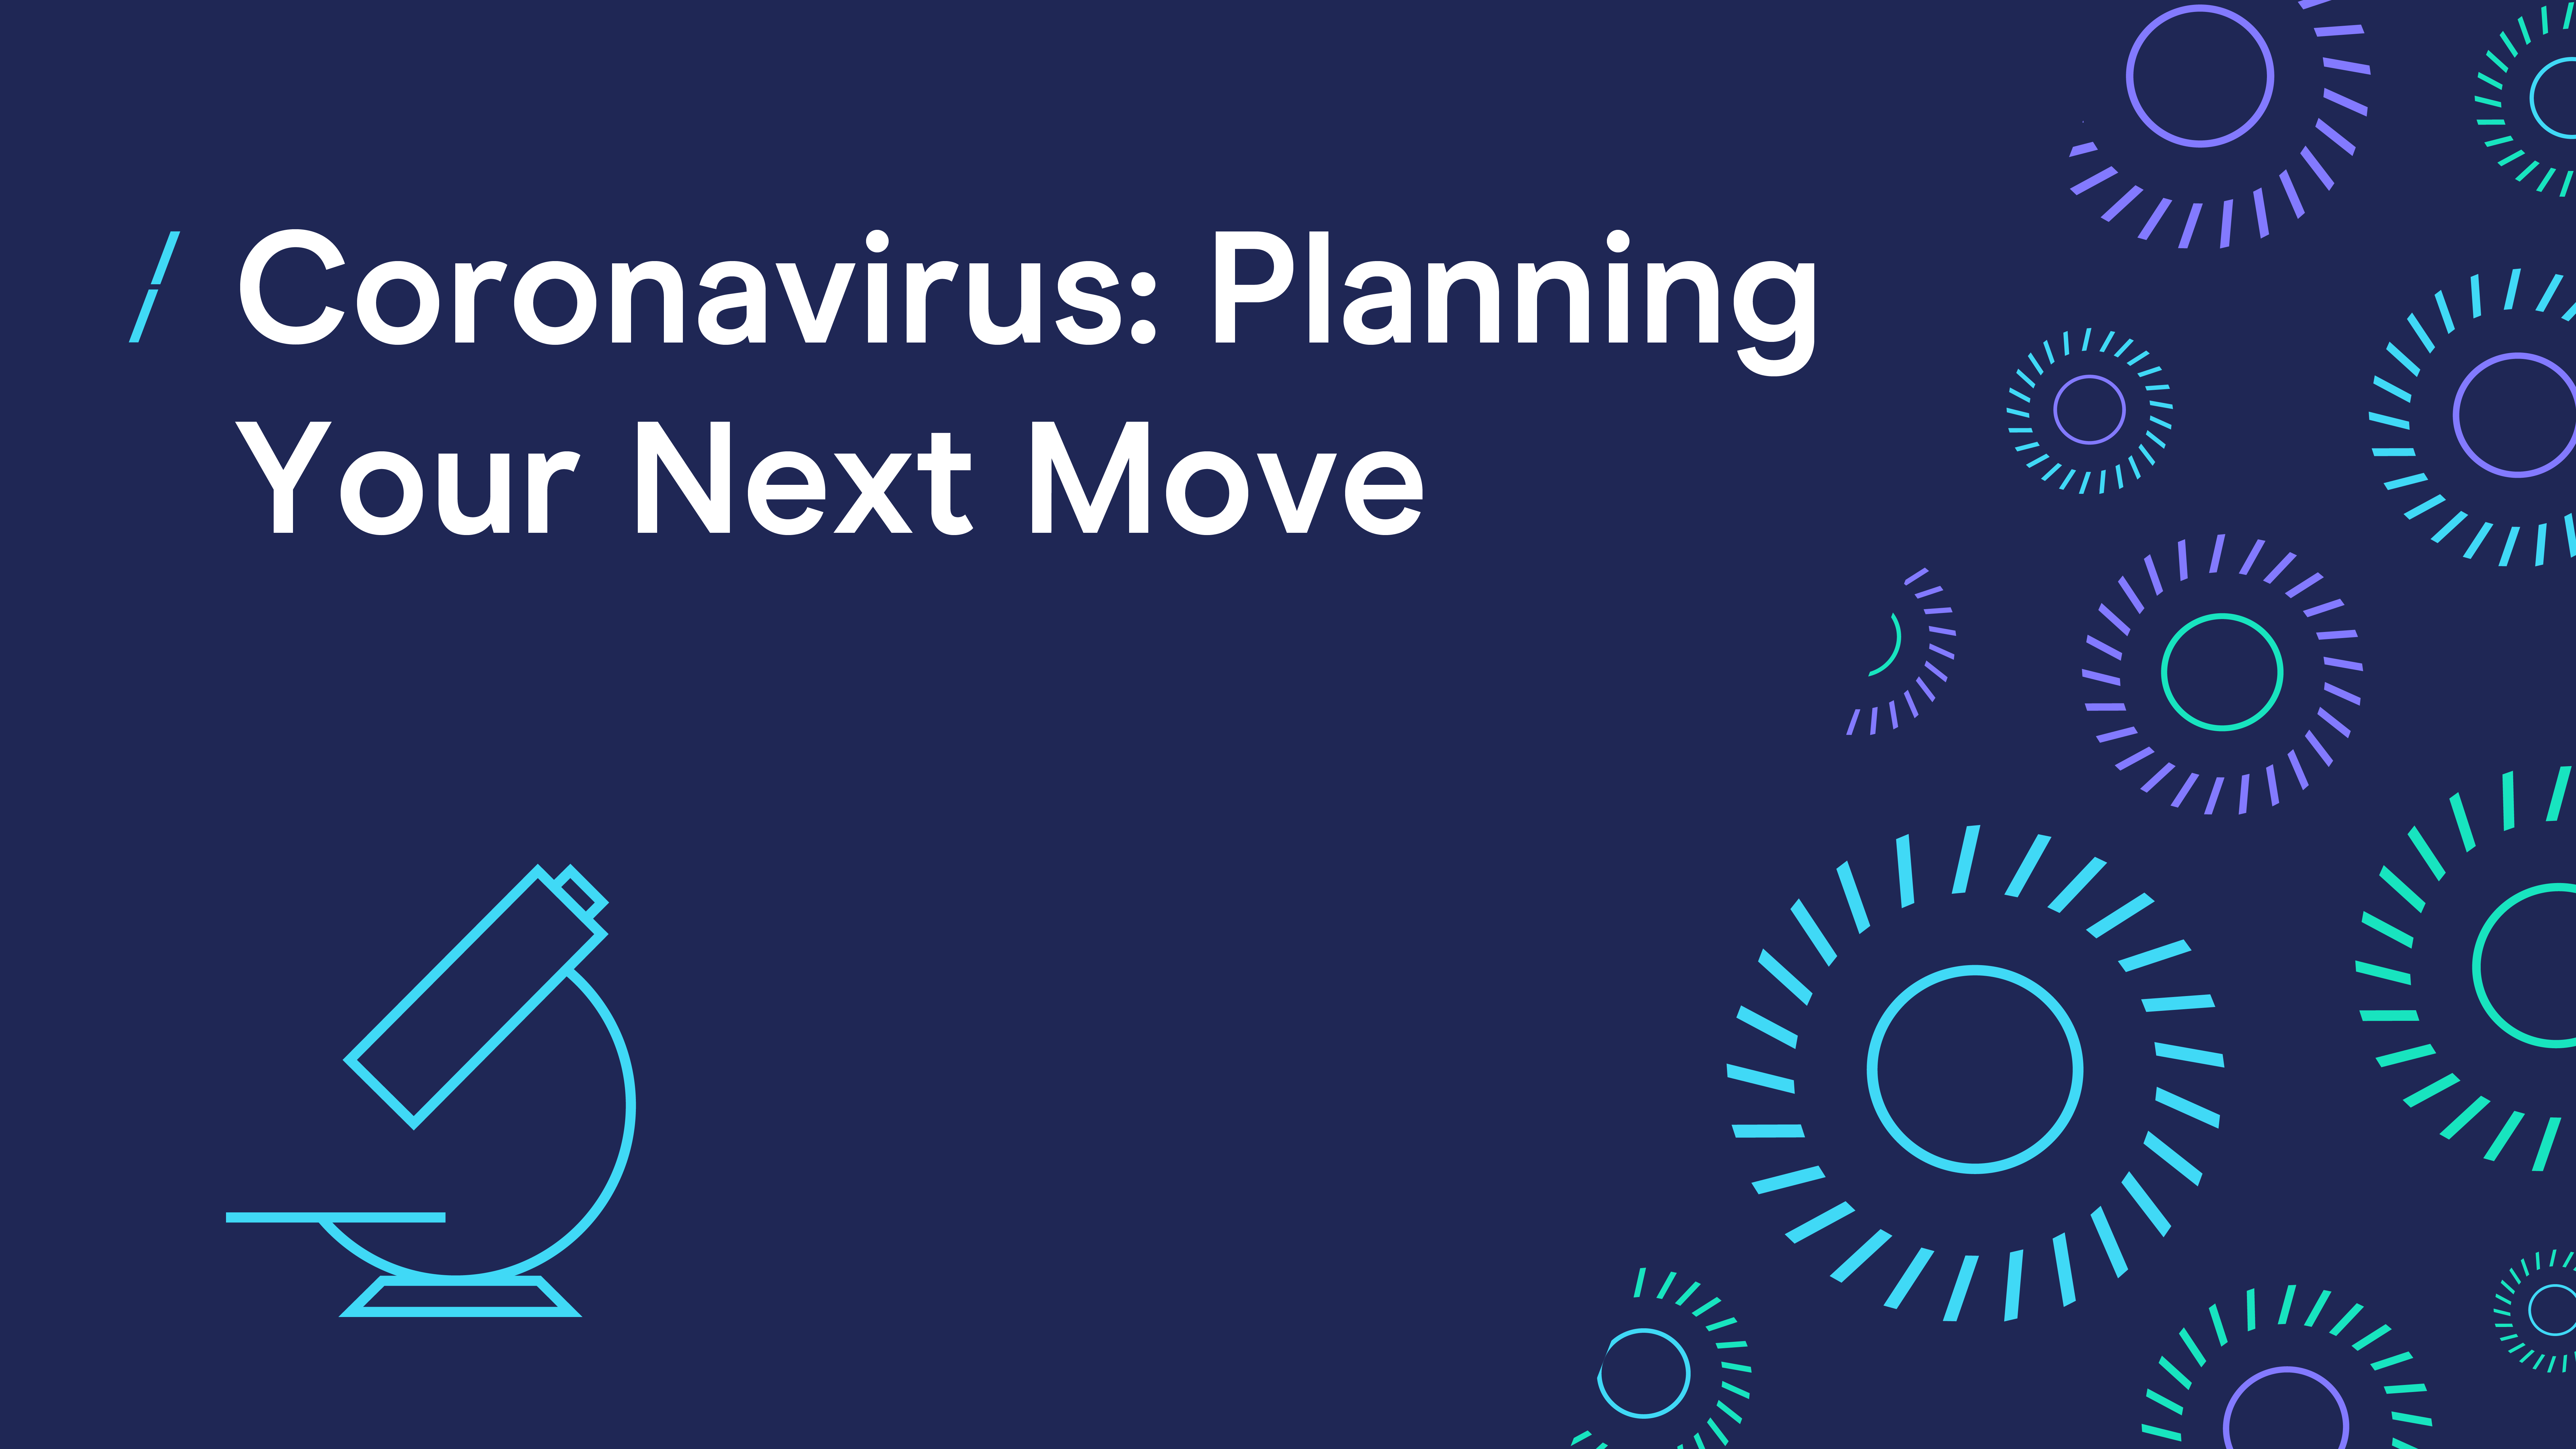 Coronavirus_planning your next move-12.png